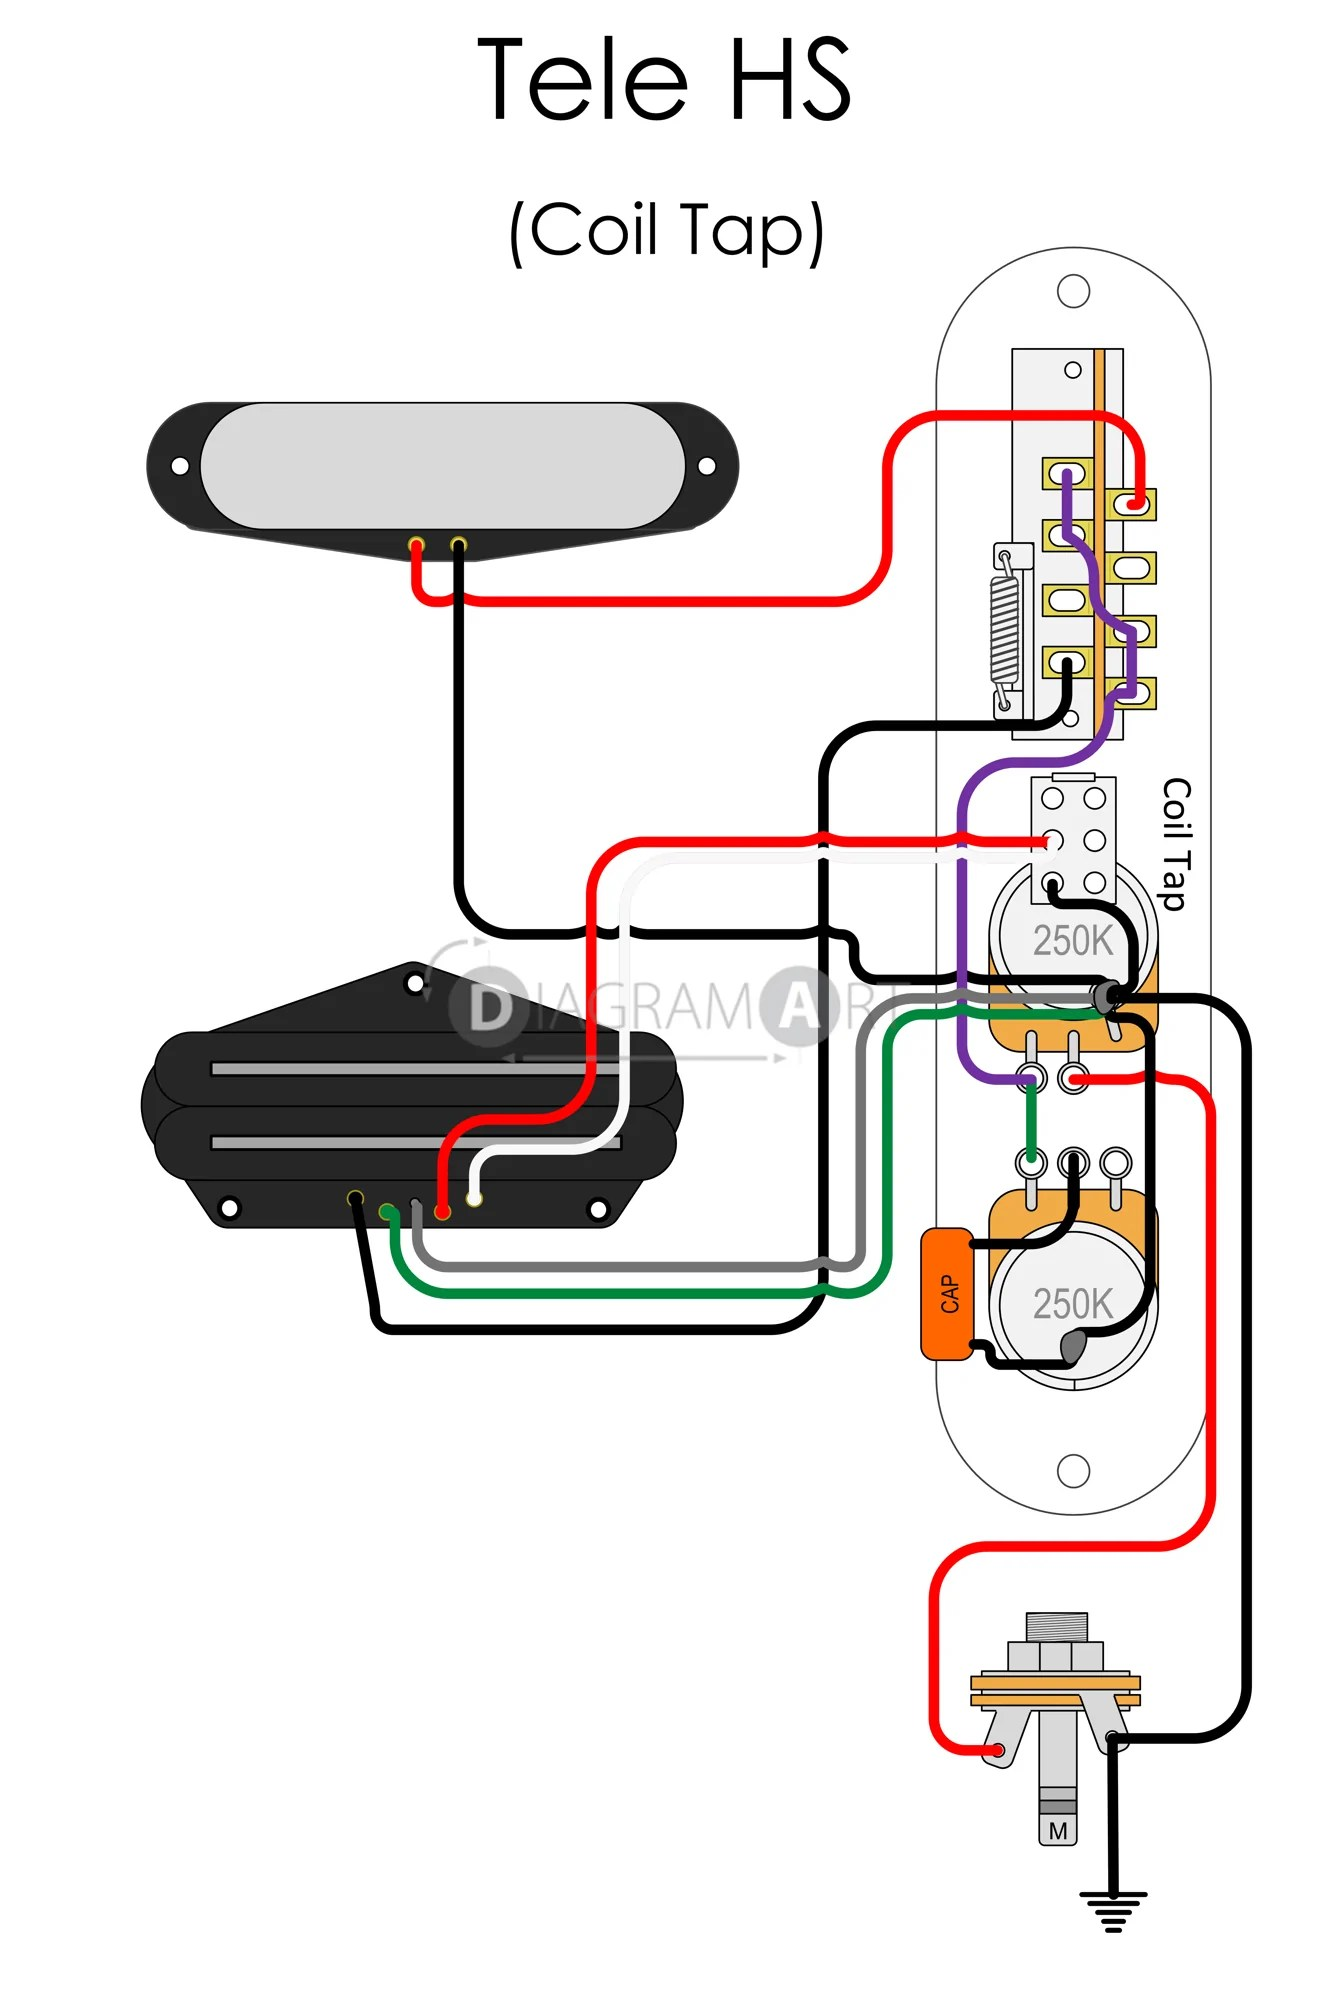 hight resolution of electric guitar wiring tele hs coil tap electric circuit coil tap wiring humbucker coil tap wiring